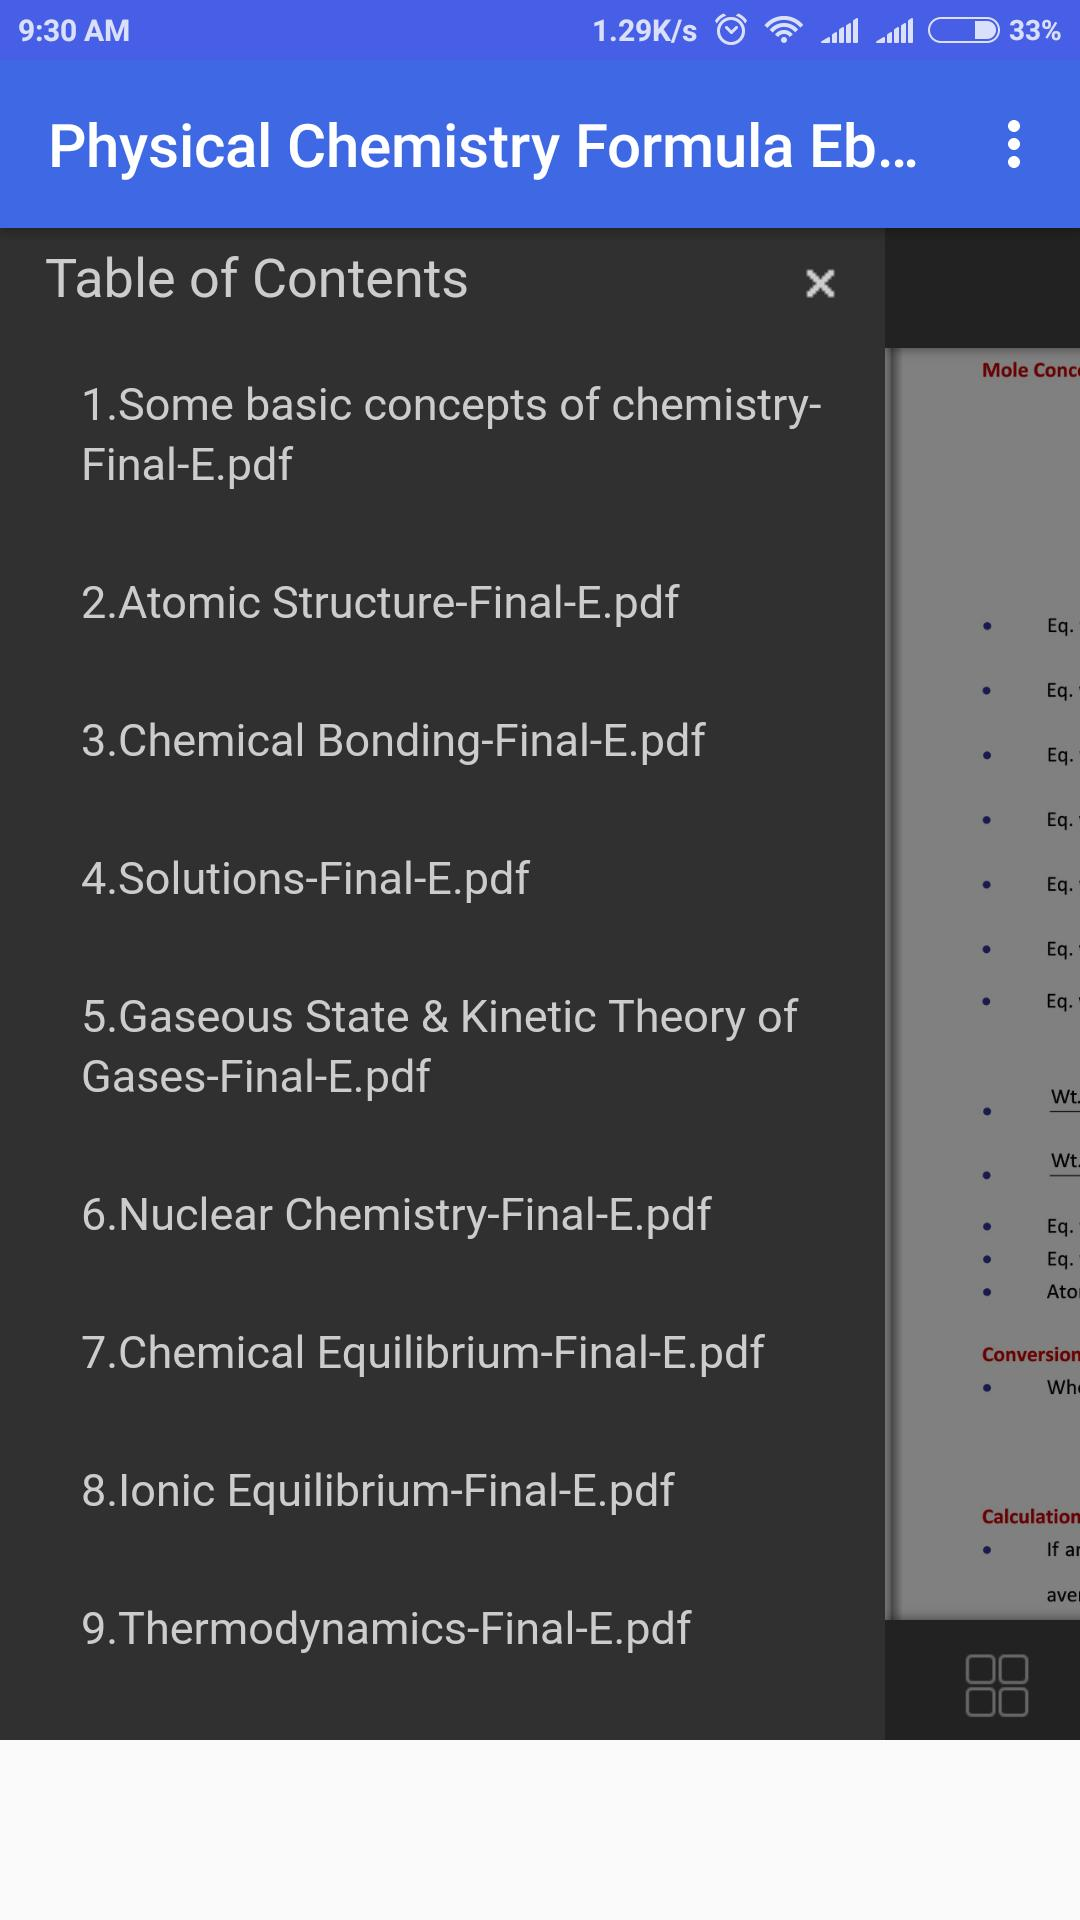 Physical Chemistry Formula Ebook Updated 2018 for Android